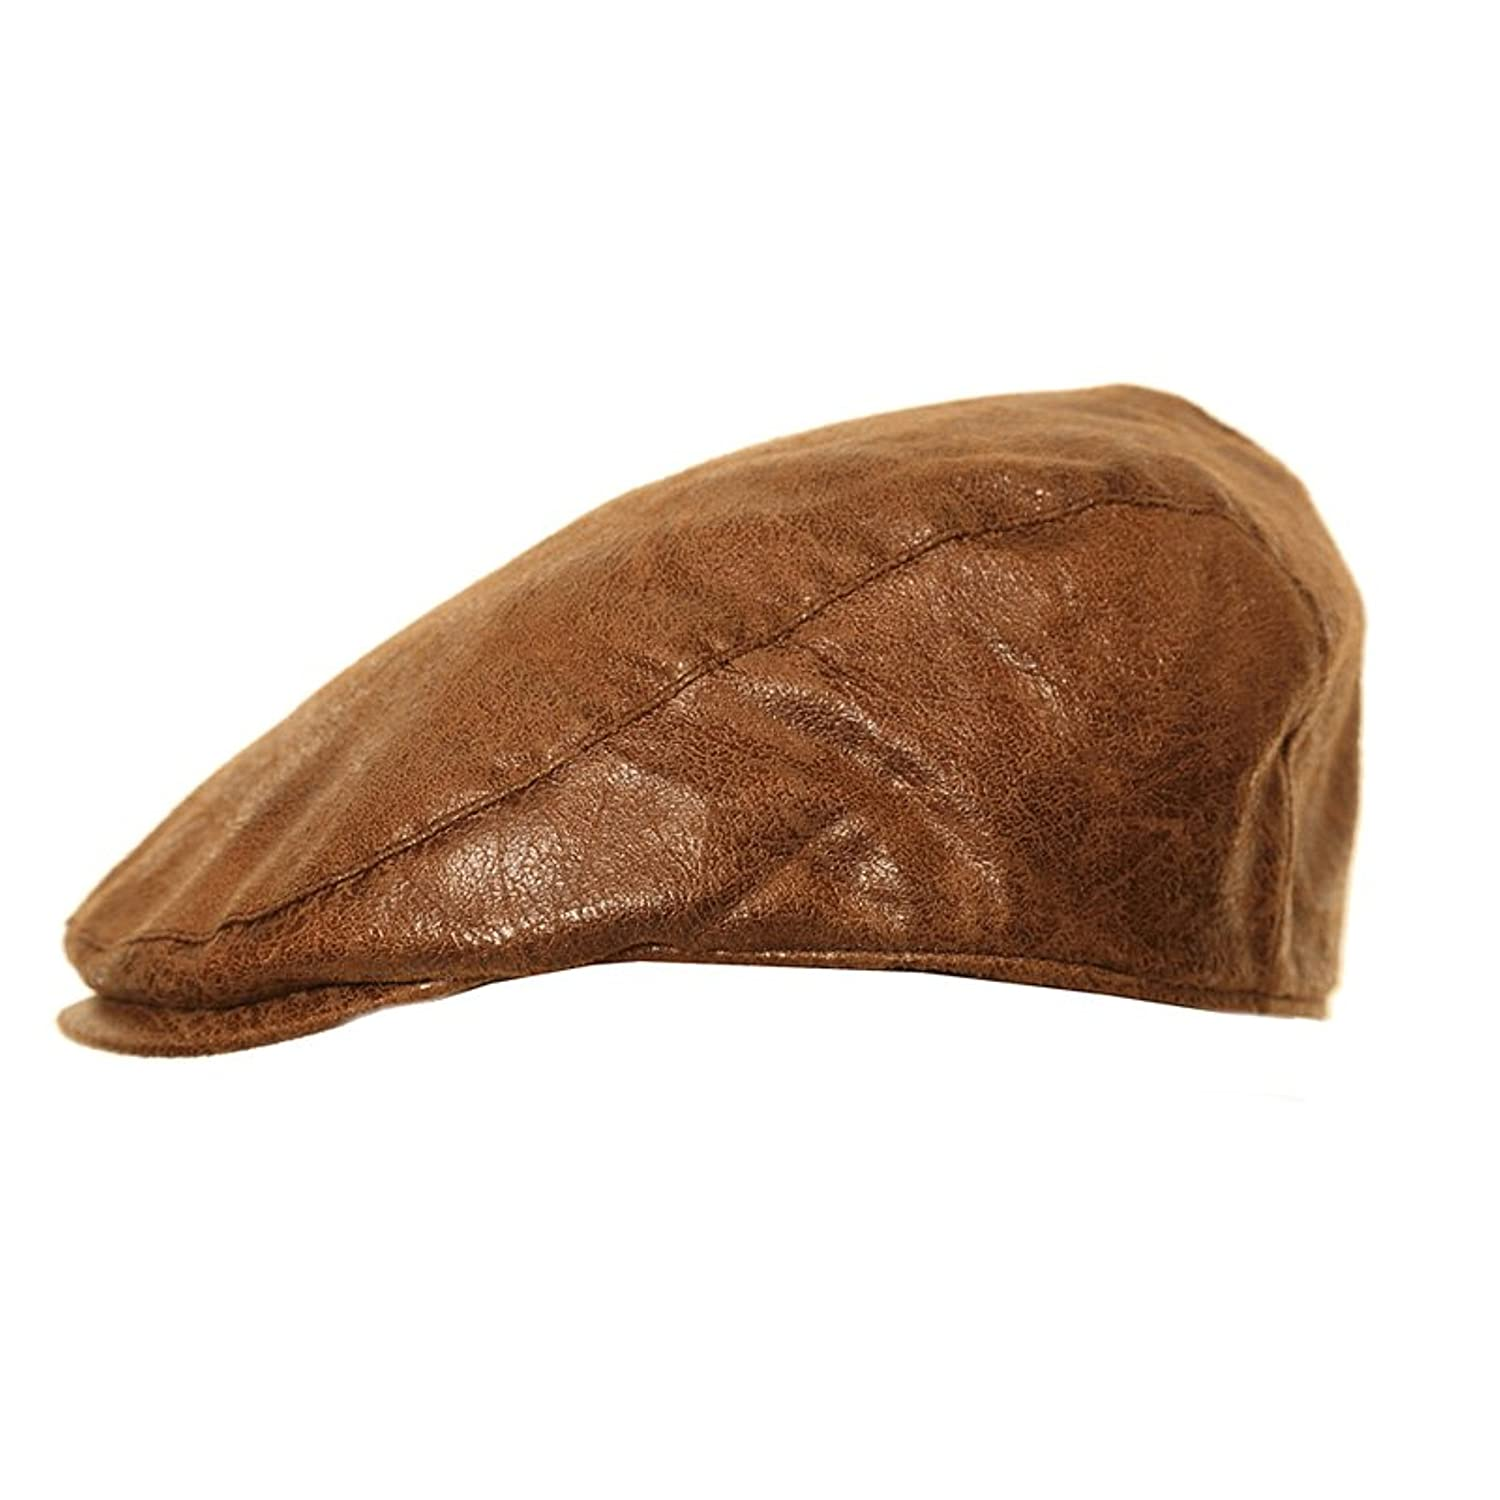 79067c830295f Wrapeezy Black or Brown Leather Look Flat Cap Mens Gatsby Hat  Amazon.co.uk   Clothing